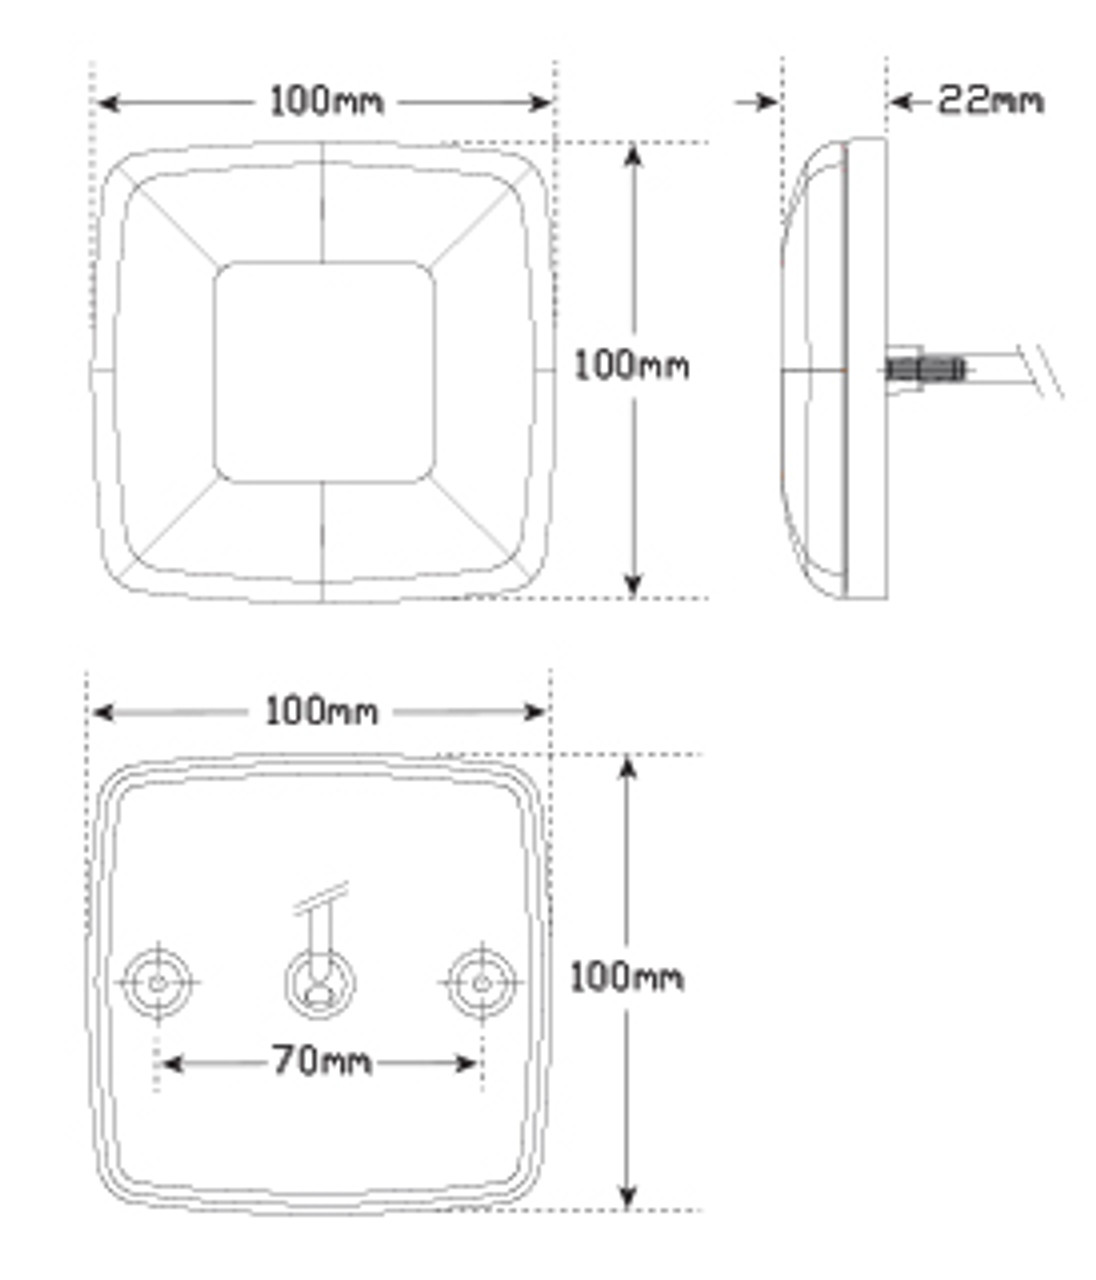 Line Drawing - 98BARLP2/10 - Stop Tail Indicator light with Reflector and Licence Plate Light, 10m cable Kit.  12v Twin pack. AL. Ultimate LED.